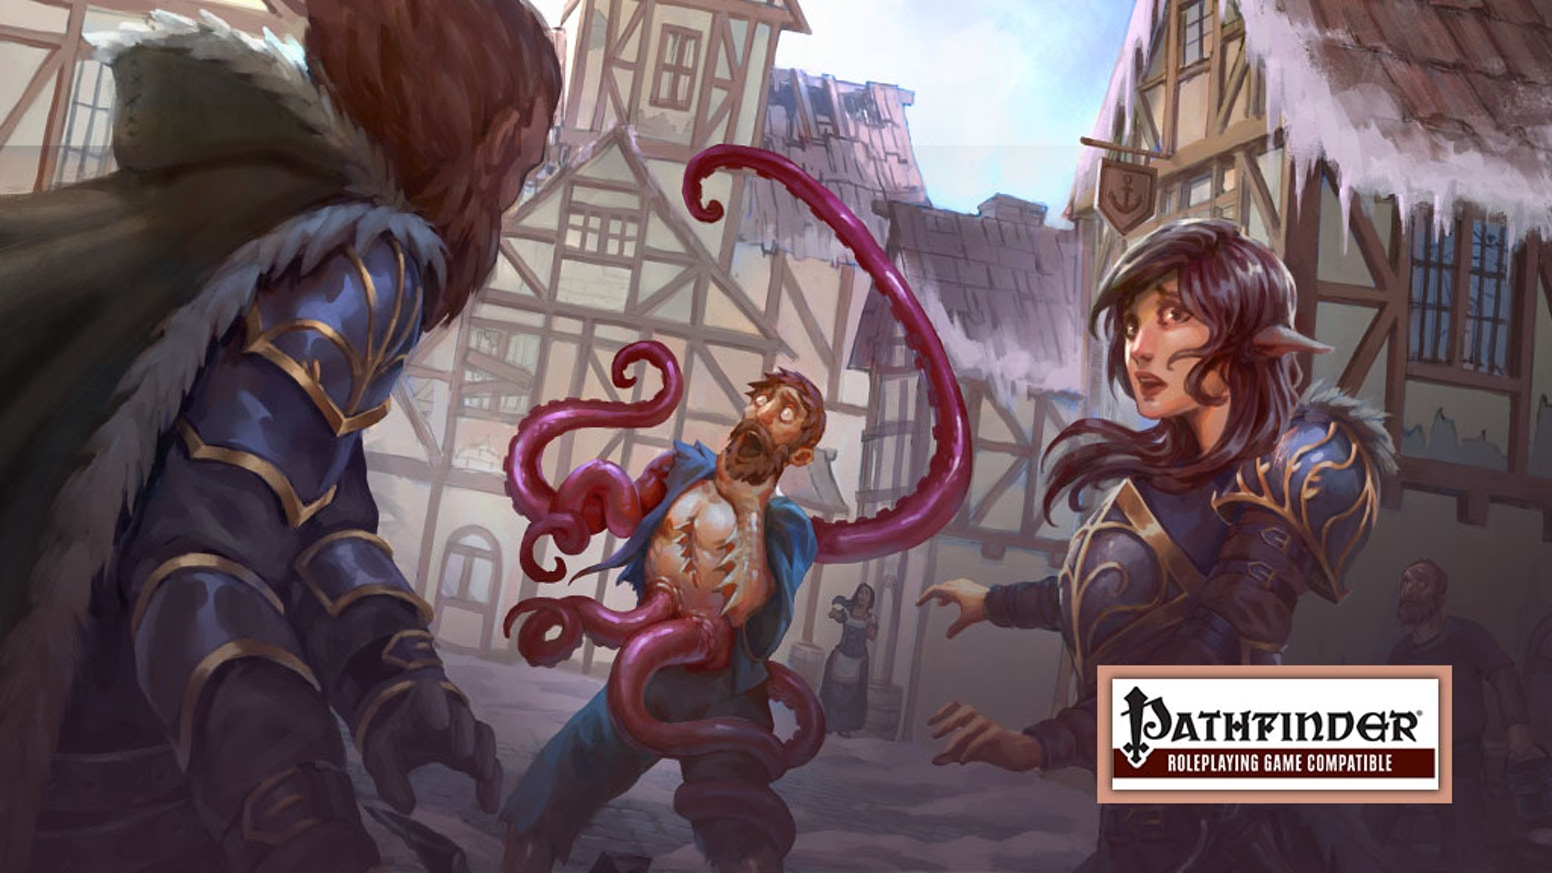 The Claws of Madness (a Pathfinder adventure module) by